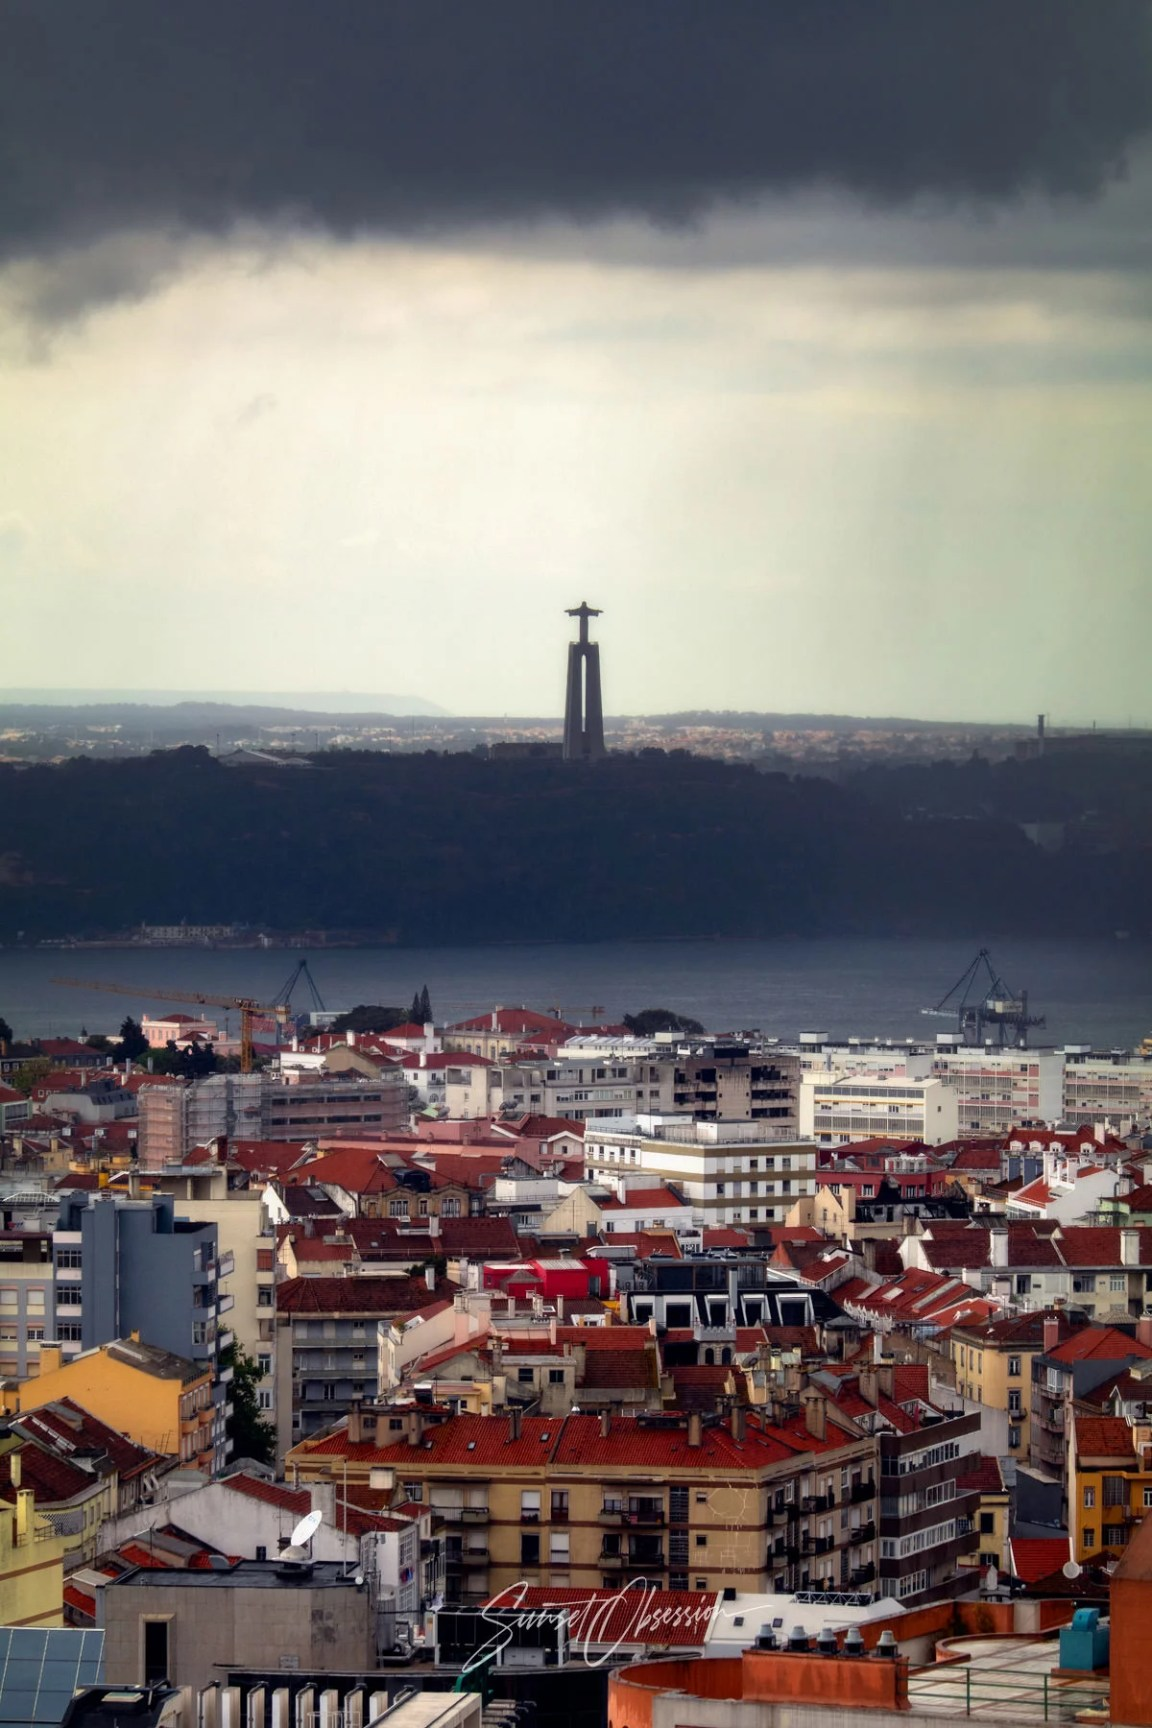 Lisbon under the storm, view from the Amoreiras roofdeck